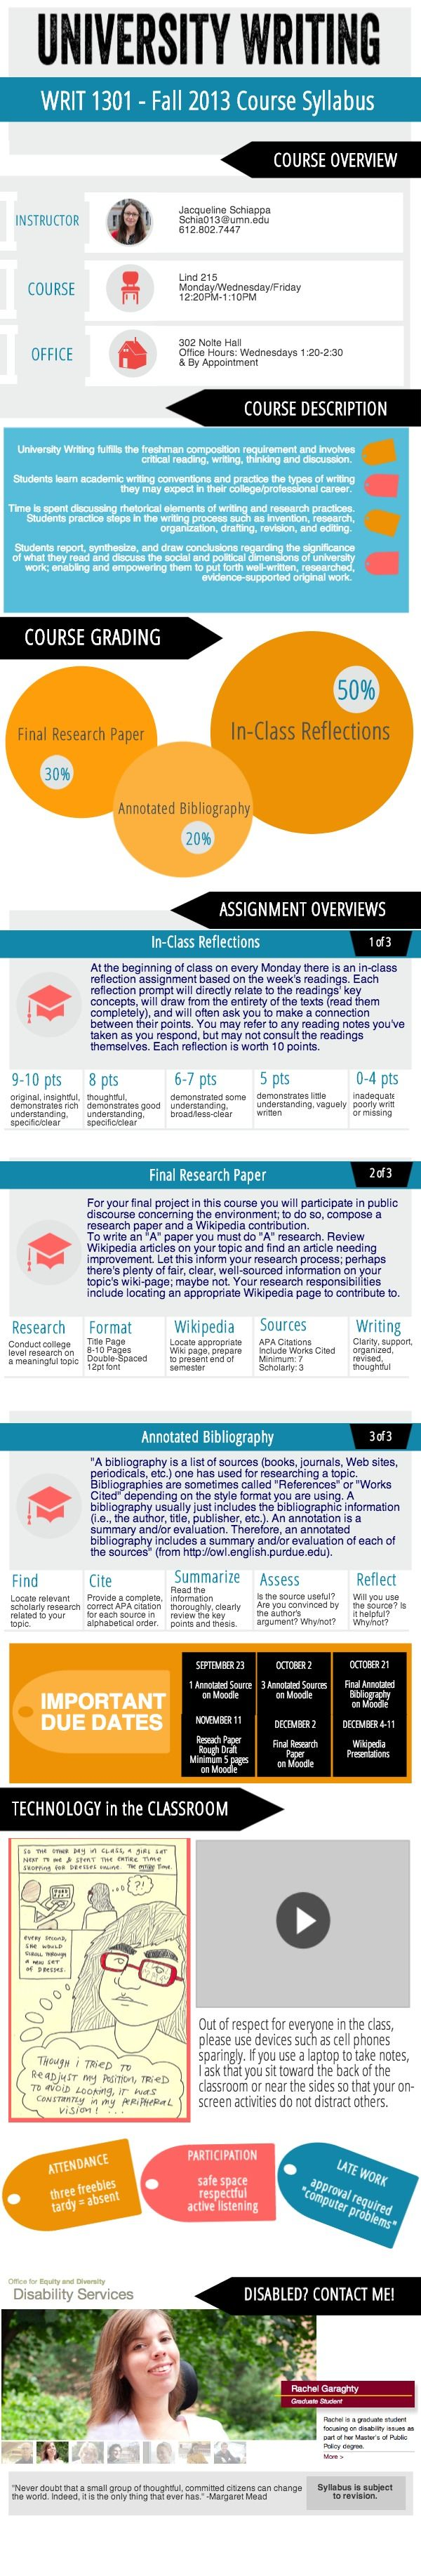 #infographic WRIT 1301 Fall 2013 Course Syllabus | Made in @Piktochart